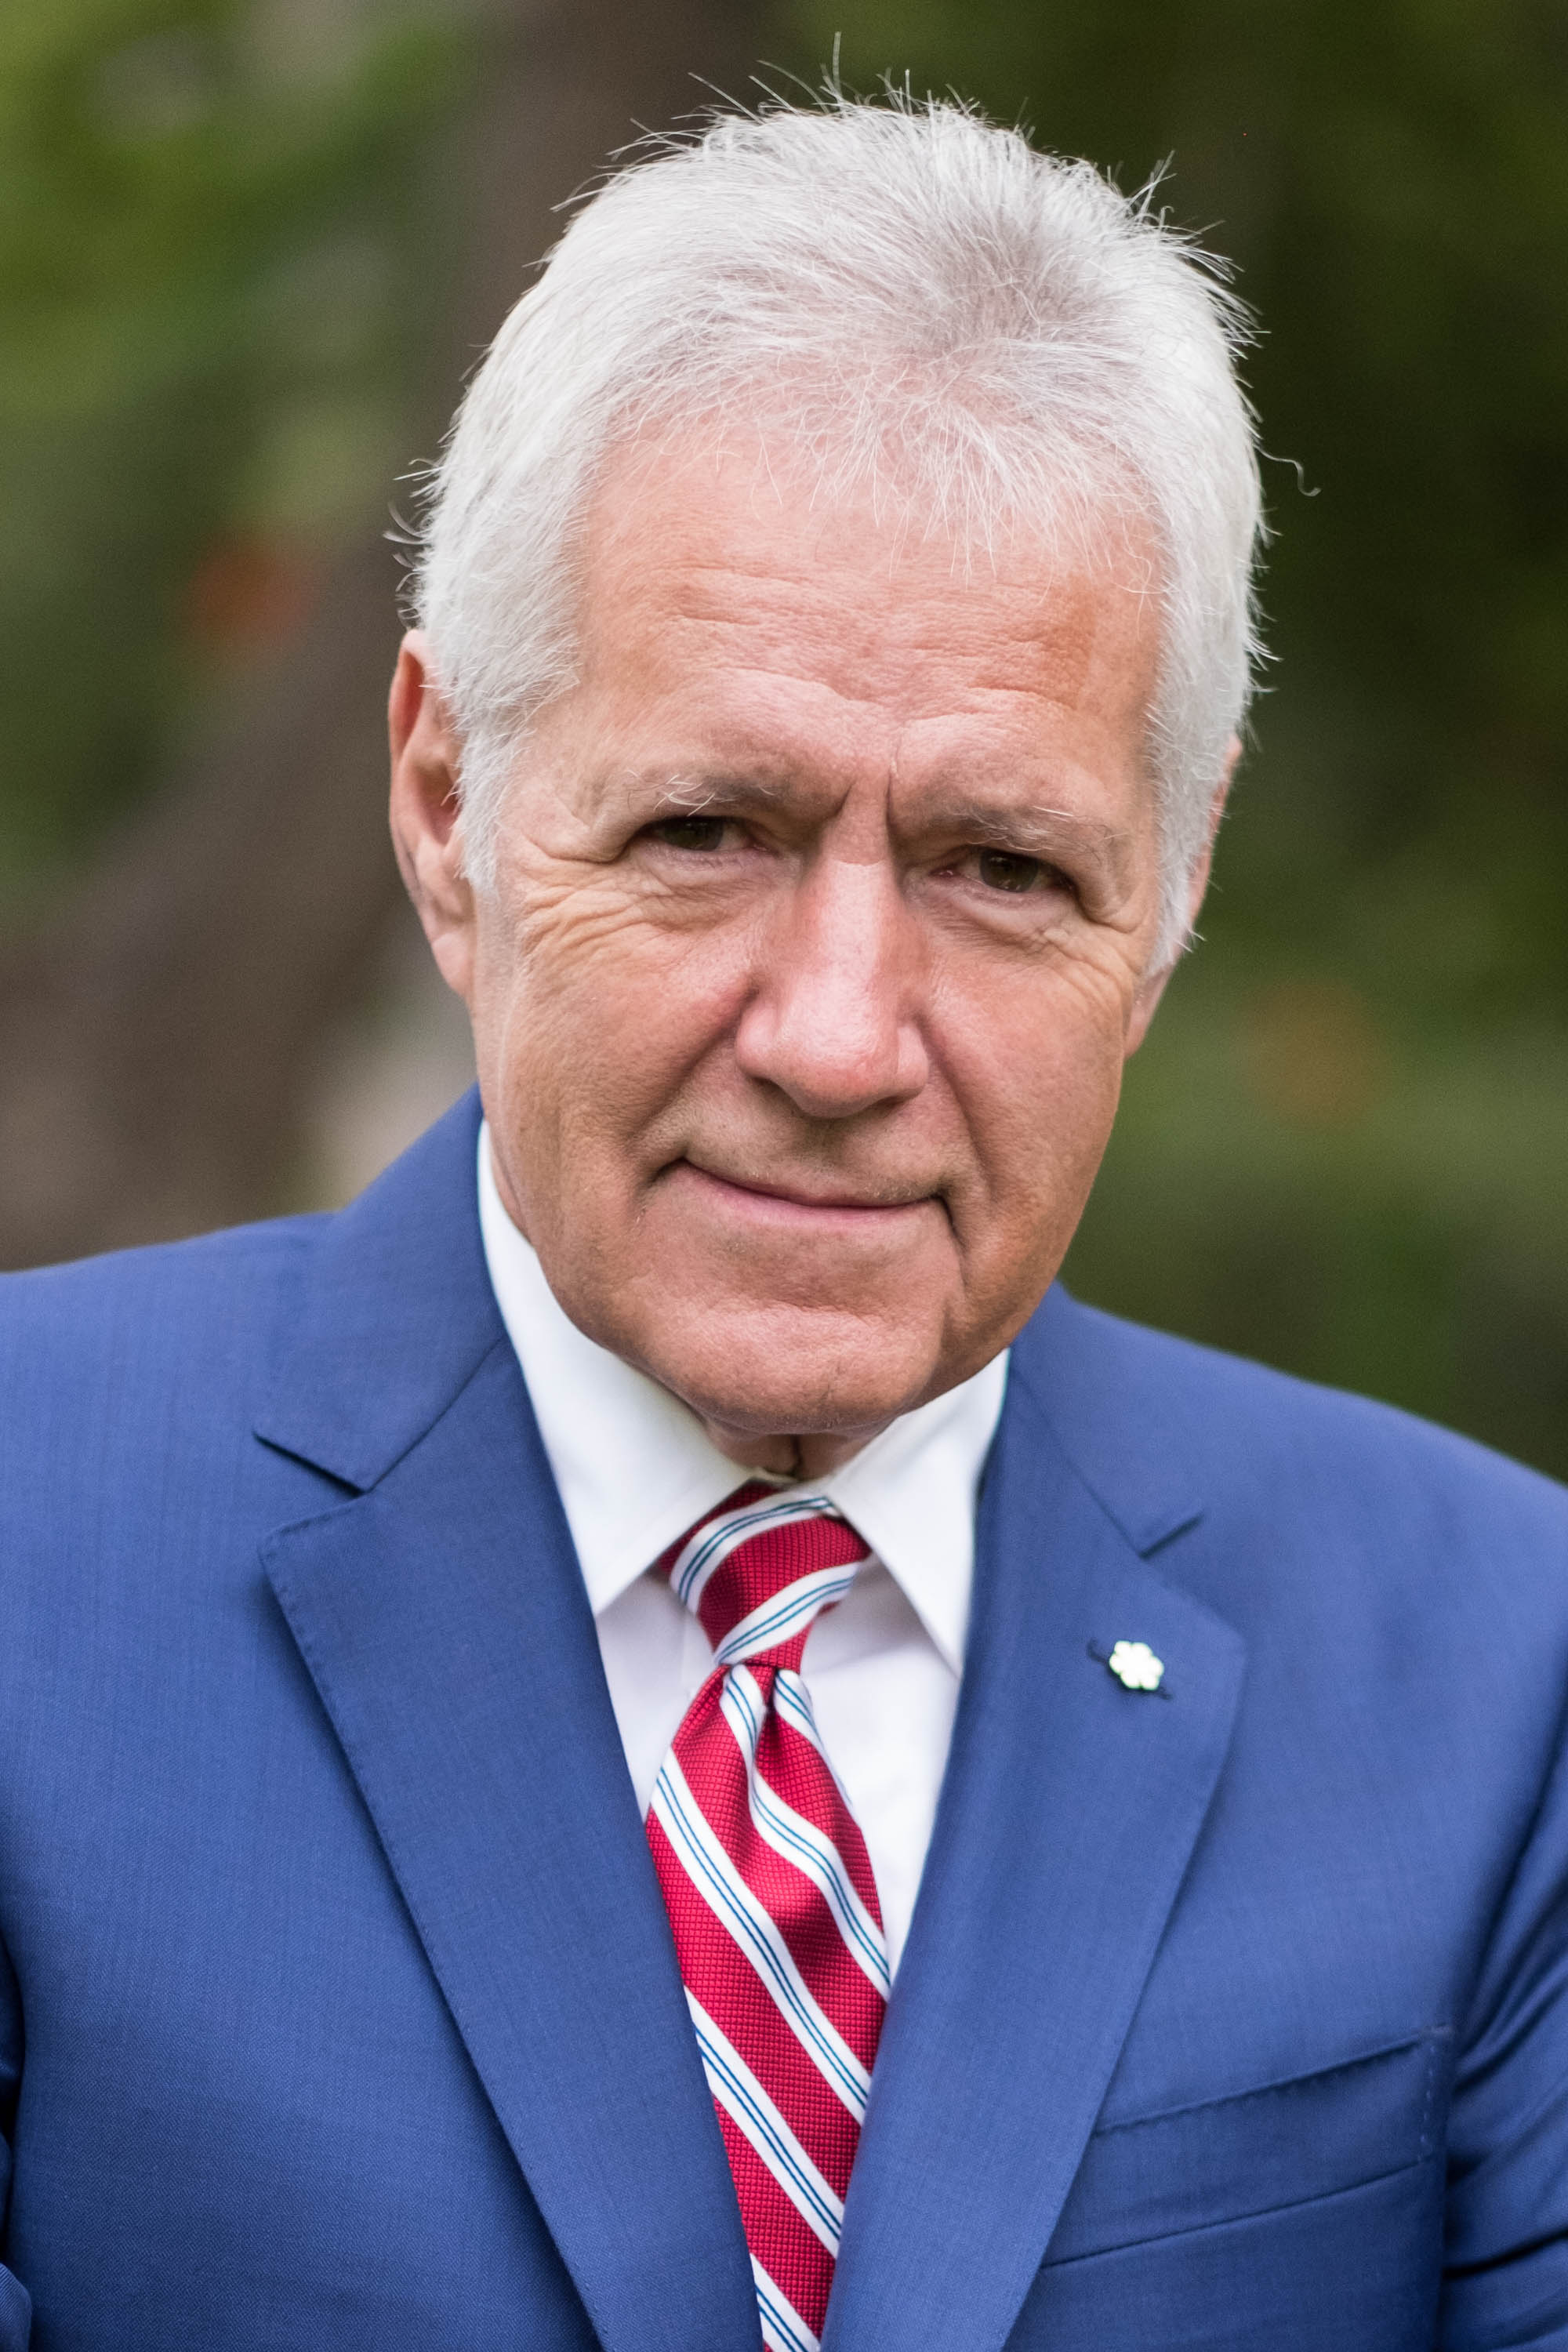 Alex Trebek attends the 150th anniversary of Canada's Confederation on June 30, 2017. | Source: Getty Images